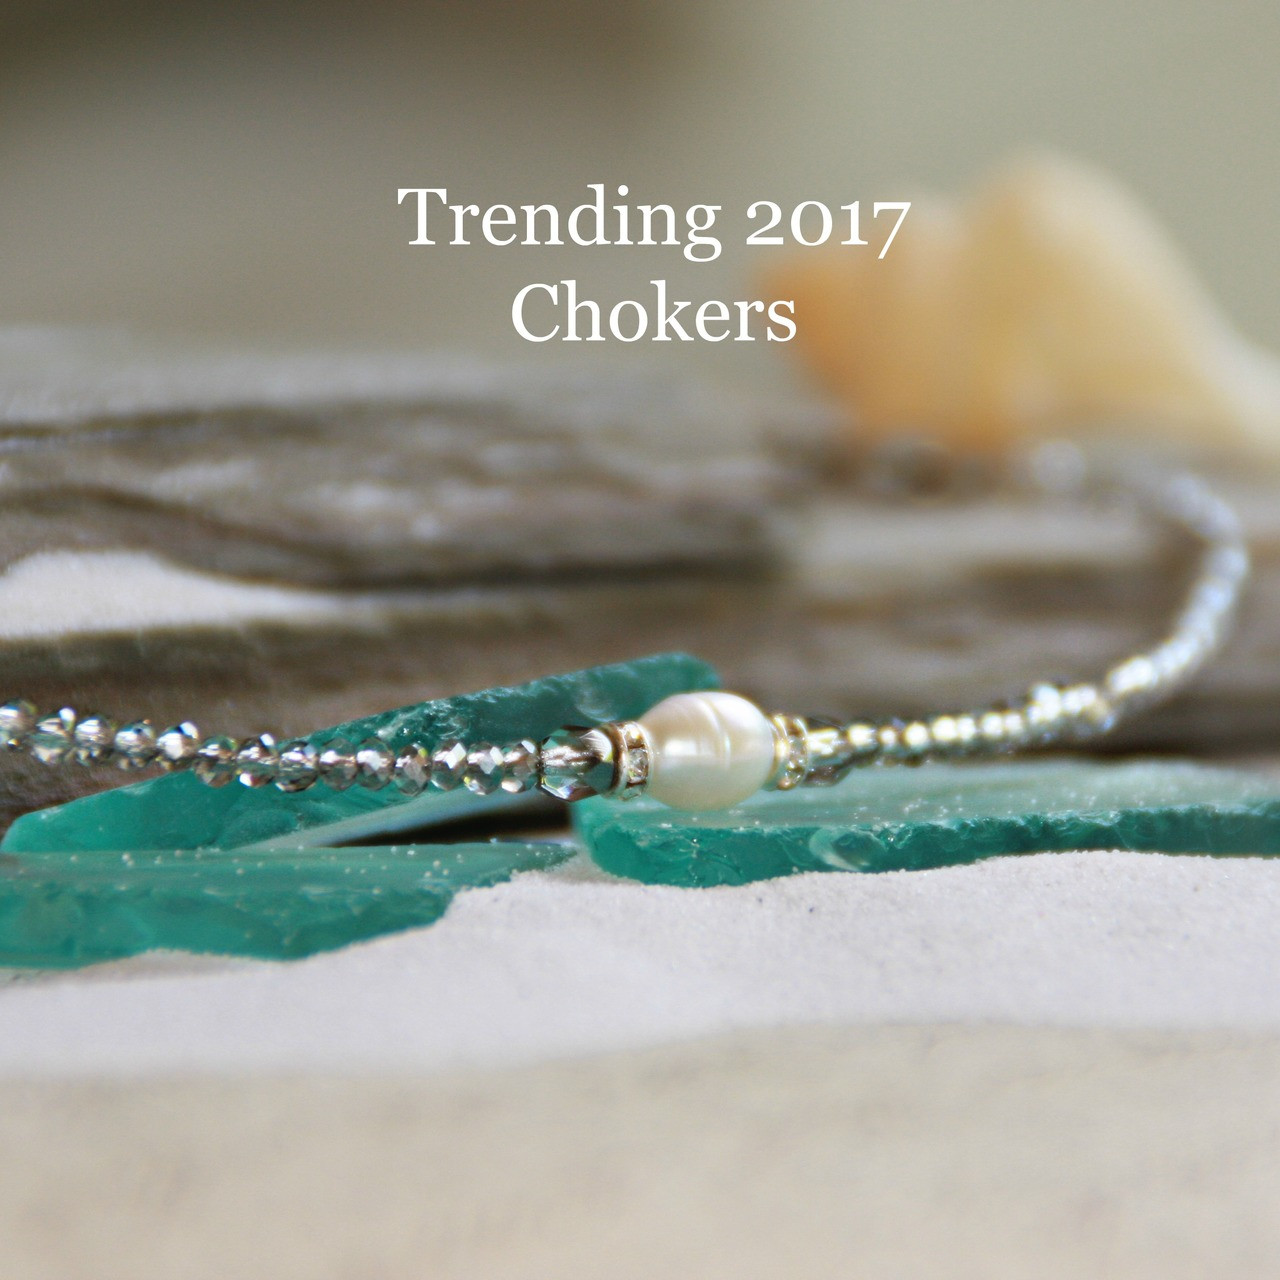 CH-26  Single Freshwater Pearl Choker with Platinum crystals